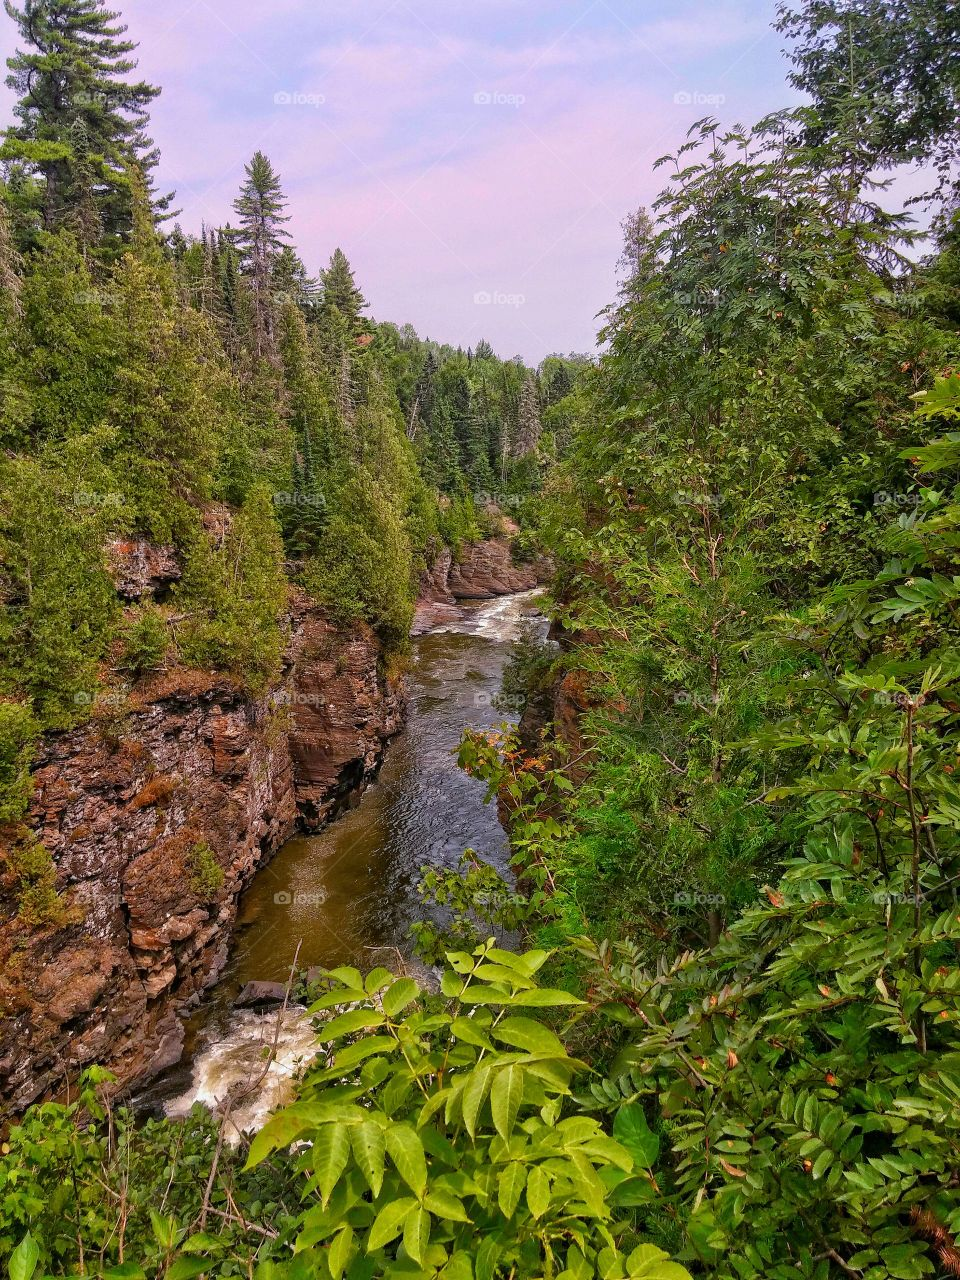 River on Border of Canada and Minnesota. Canada is on the left, Minnesota on the right.